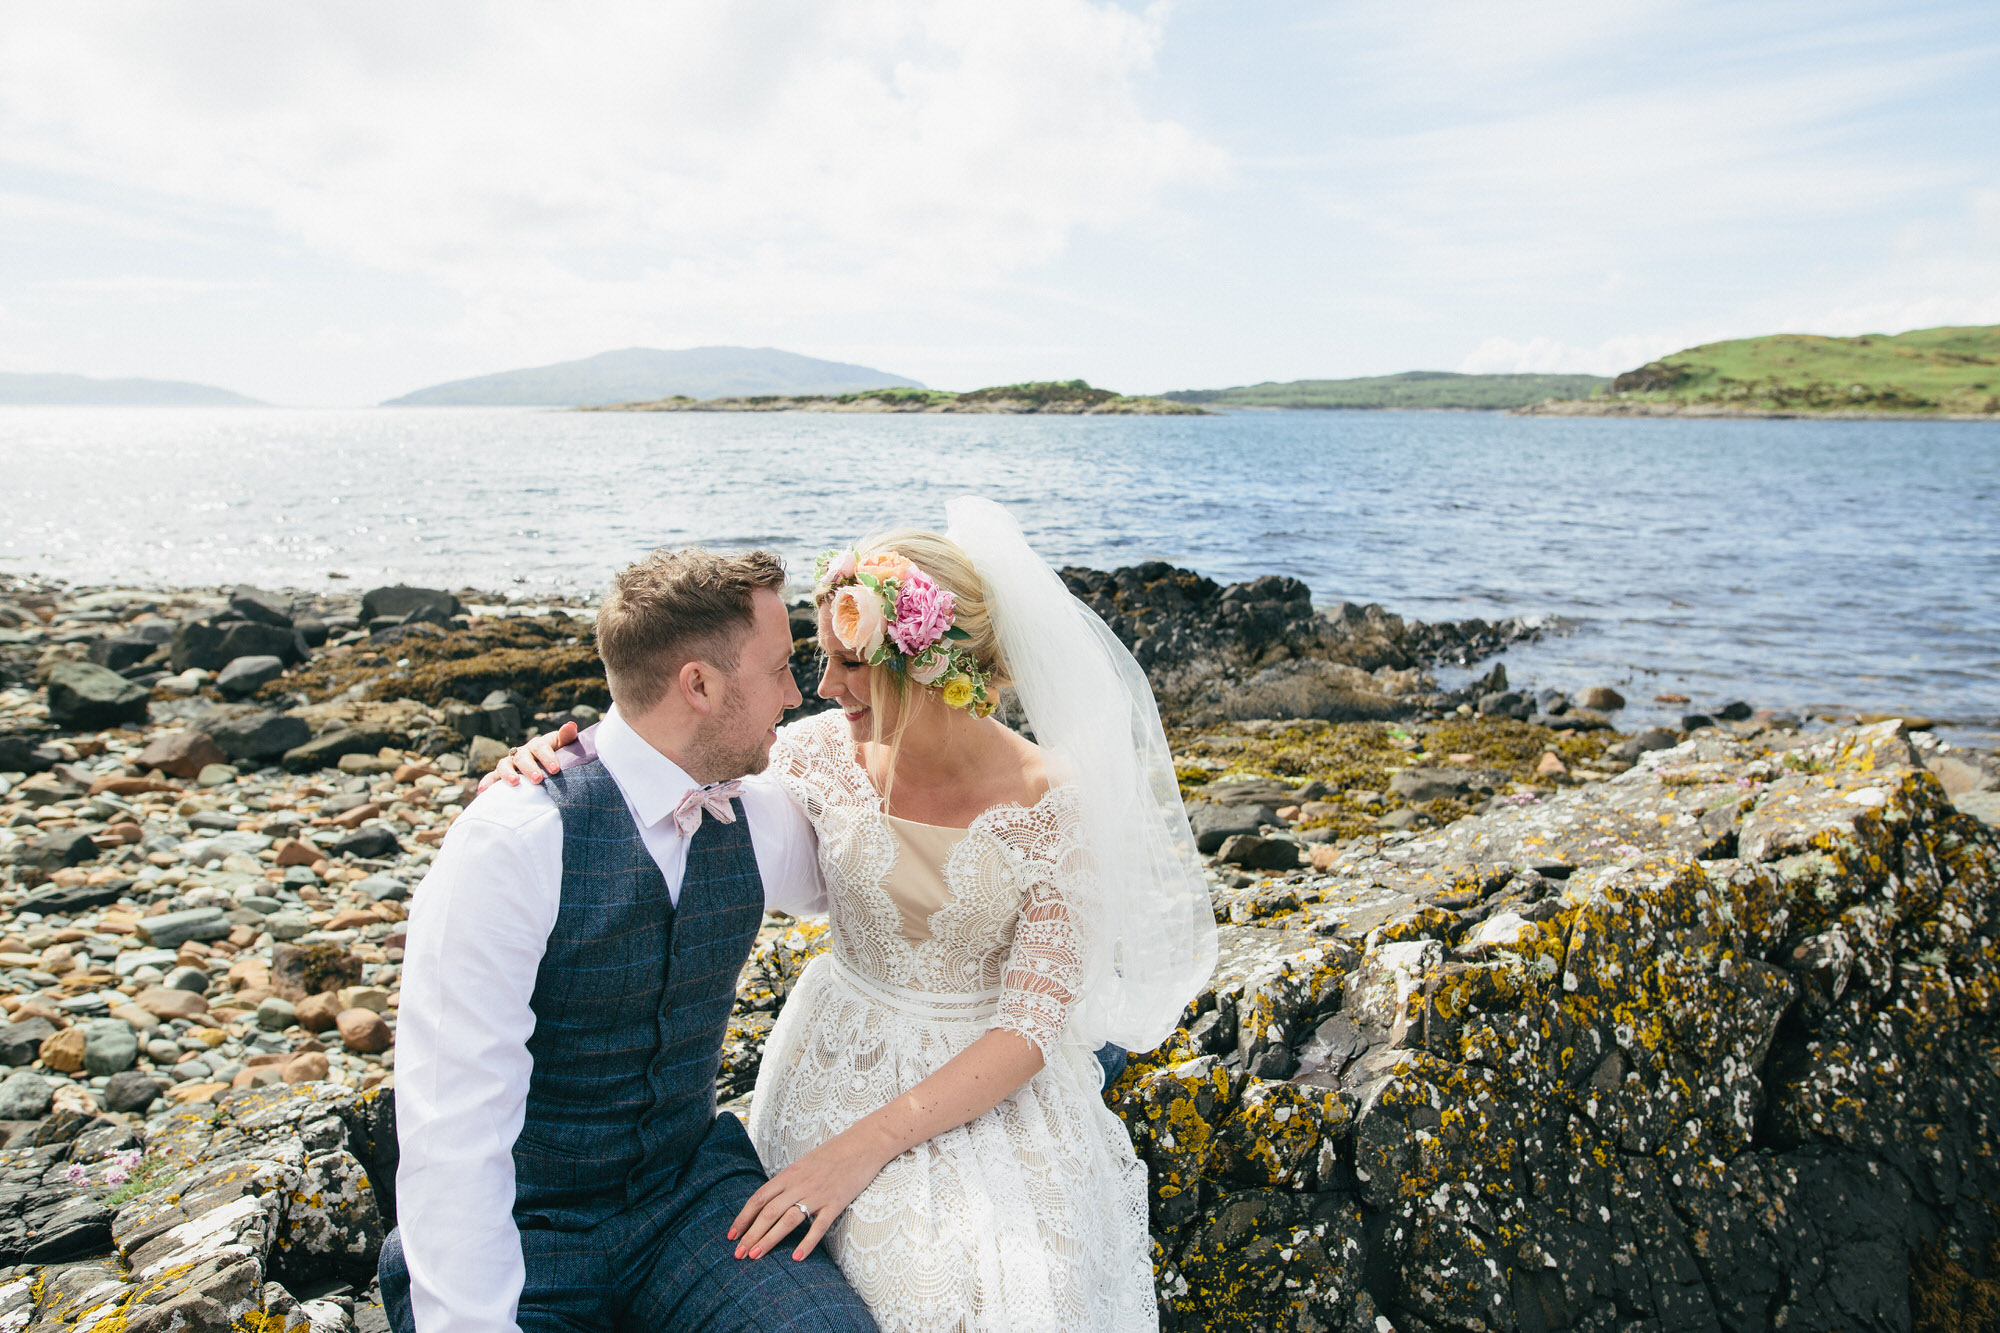 Alternative Natural Quirky Wedding Photographs UK Scotland 161.jpg